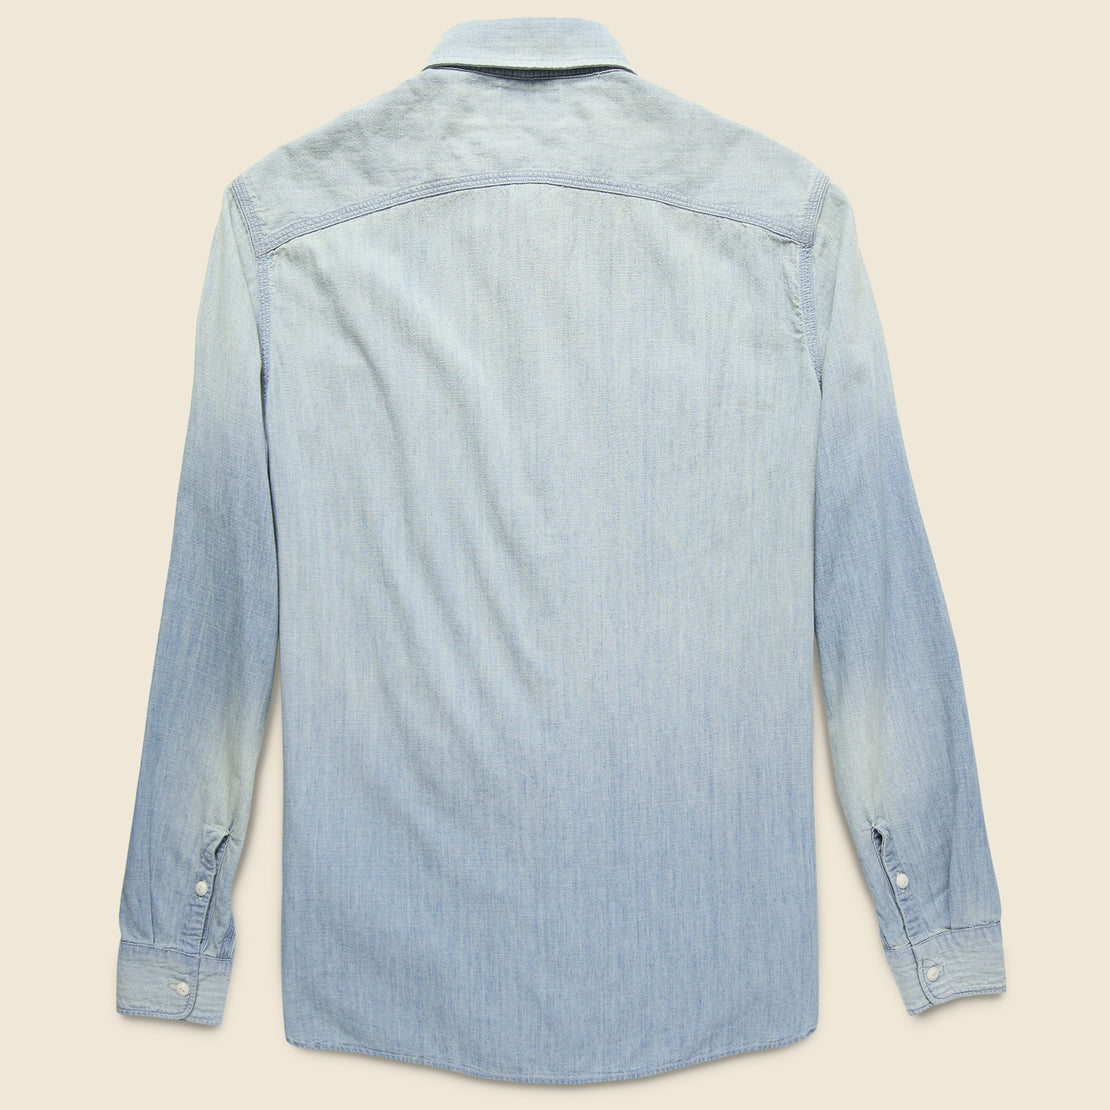 Farrell Chambray Workshirt - Medium Wash